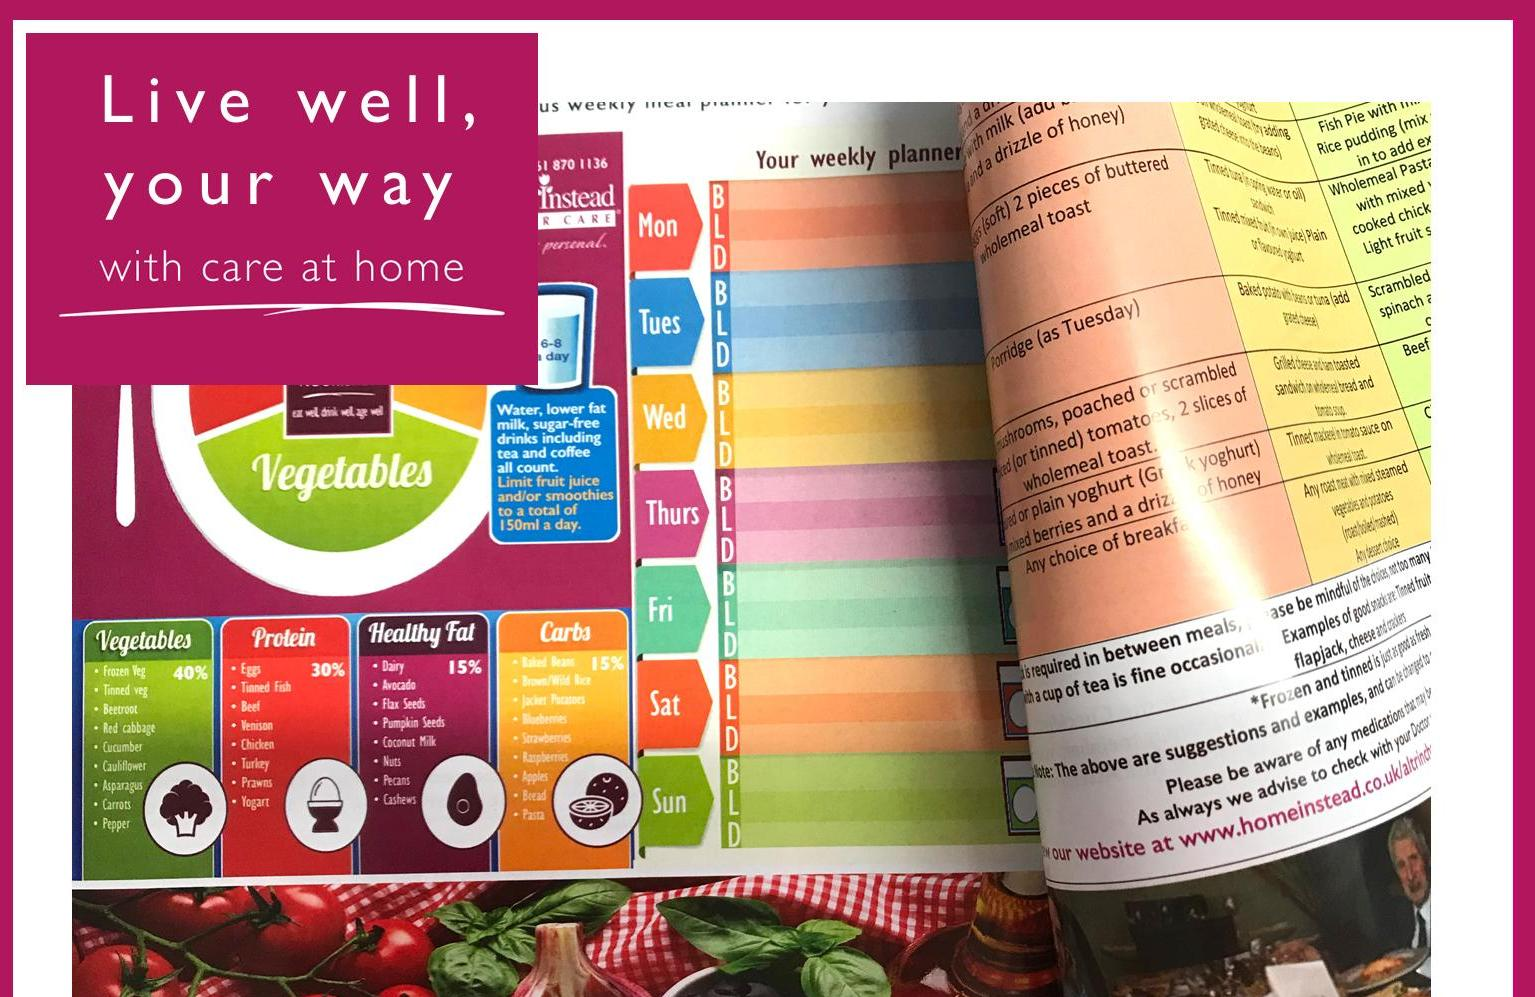 Meal Planner in Live well, you way magazine